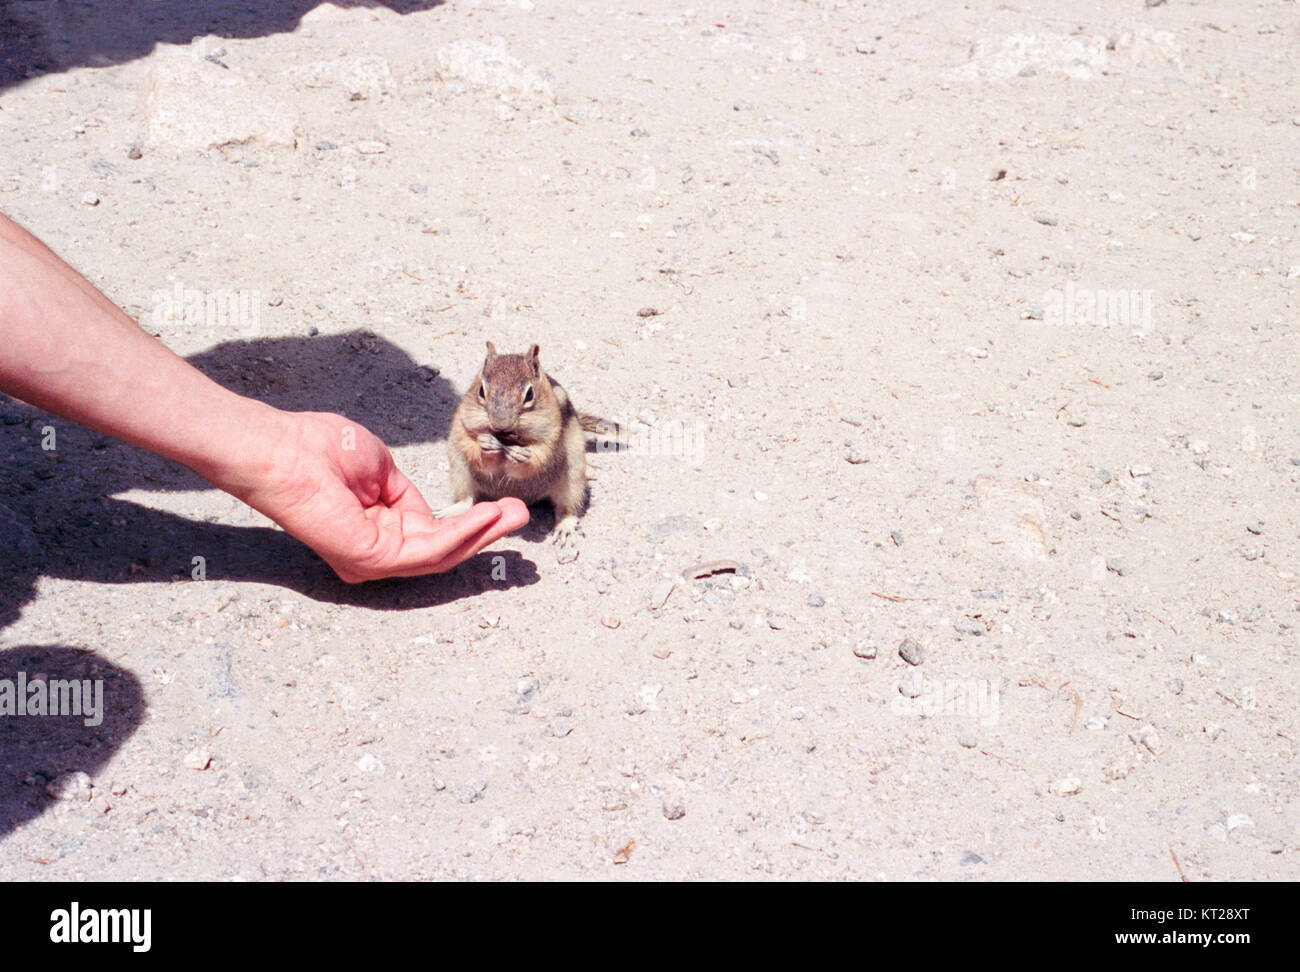 Cute and friendly chipmunk eating out of outstretched hand Stock Photo